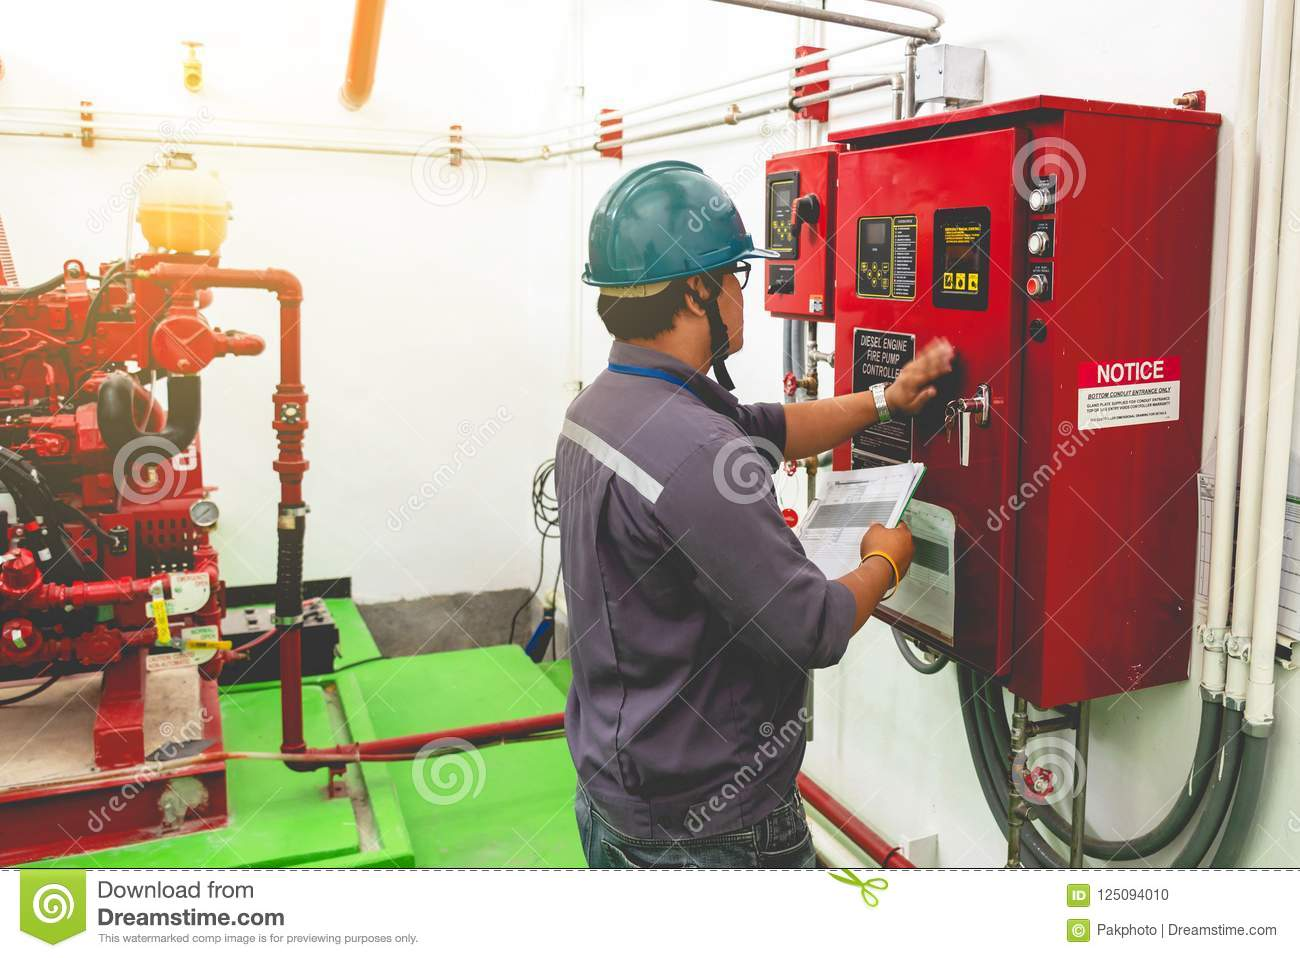 download engineer checking industrial generator fire control system editorial image image of diesel factory